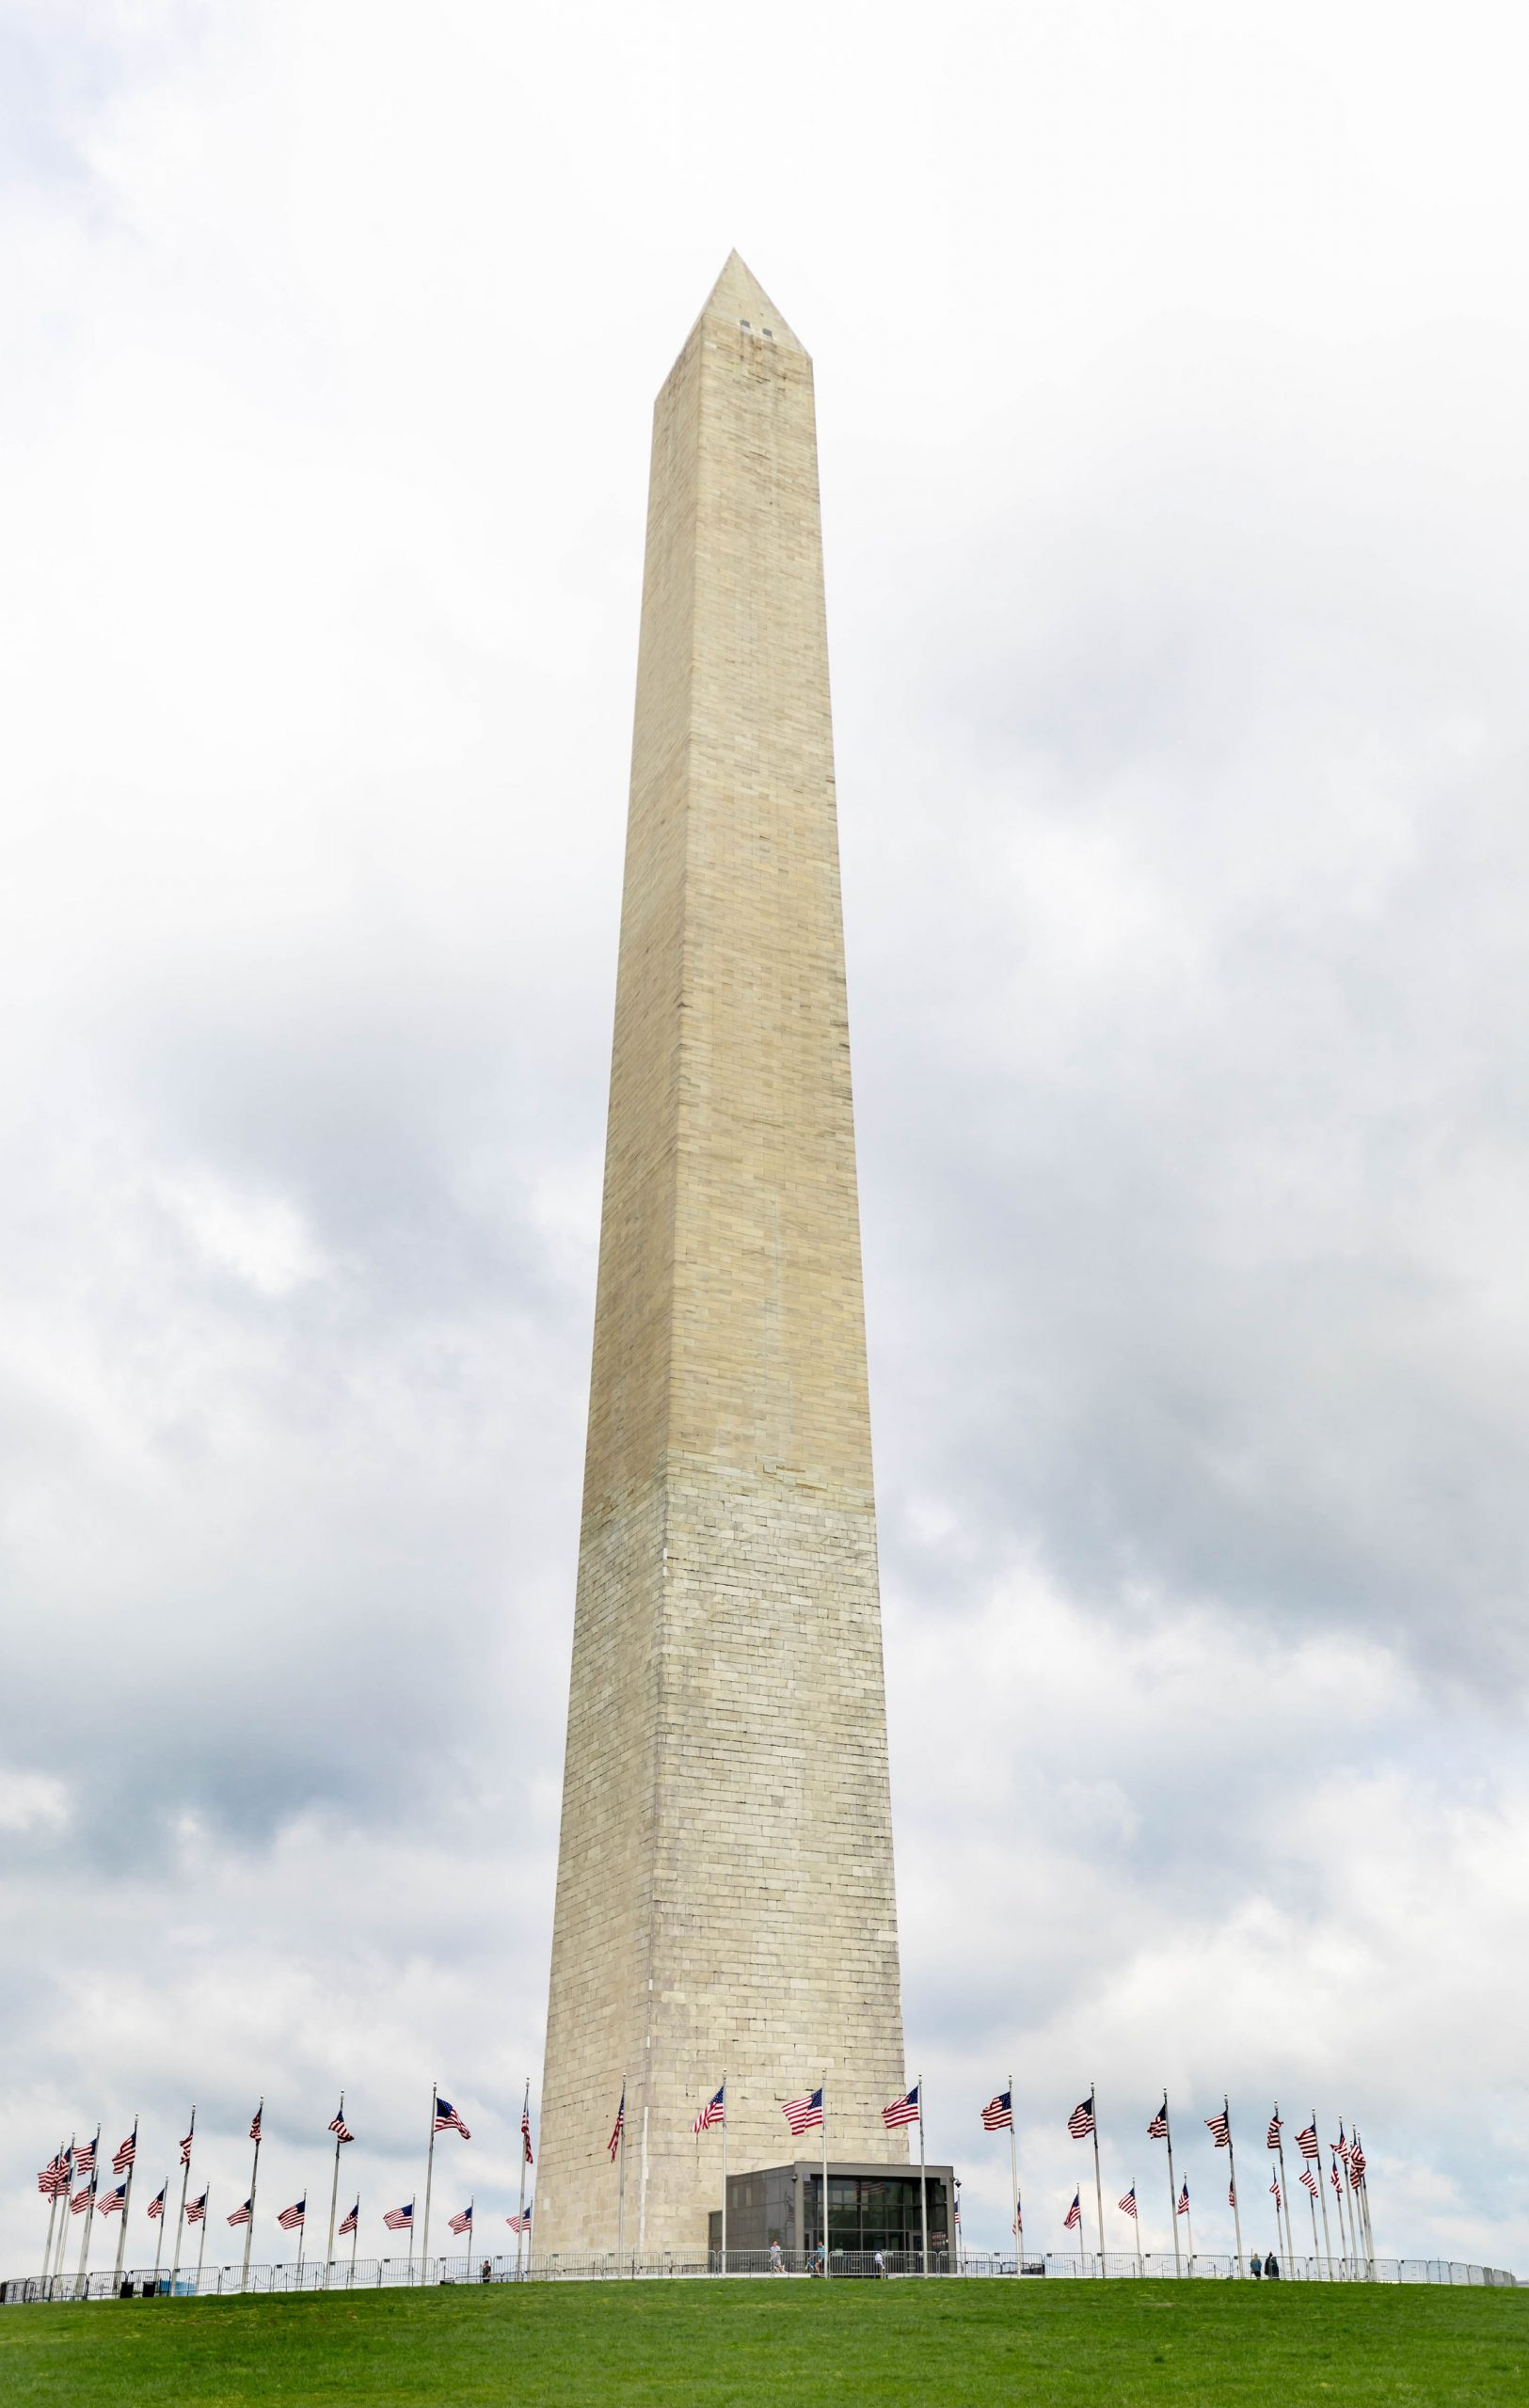 Washington Monument Obelisk in Washington DC Photographed by Luxury Travel Writer Annie Fairfax